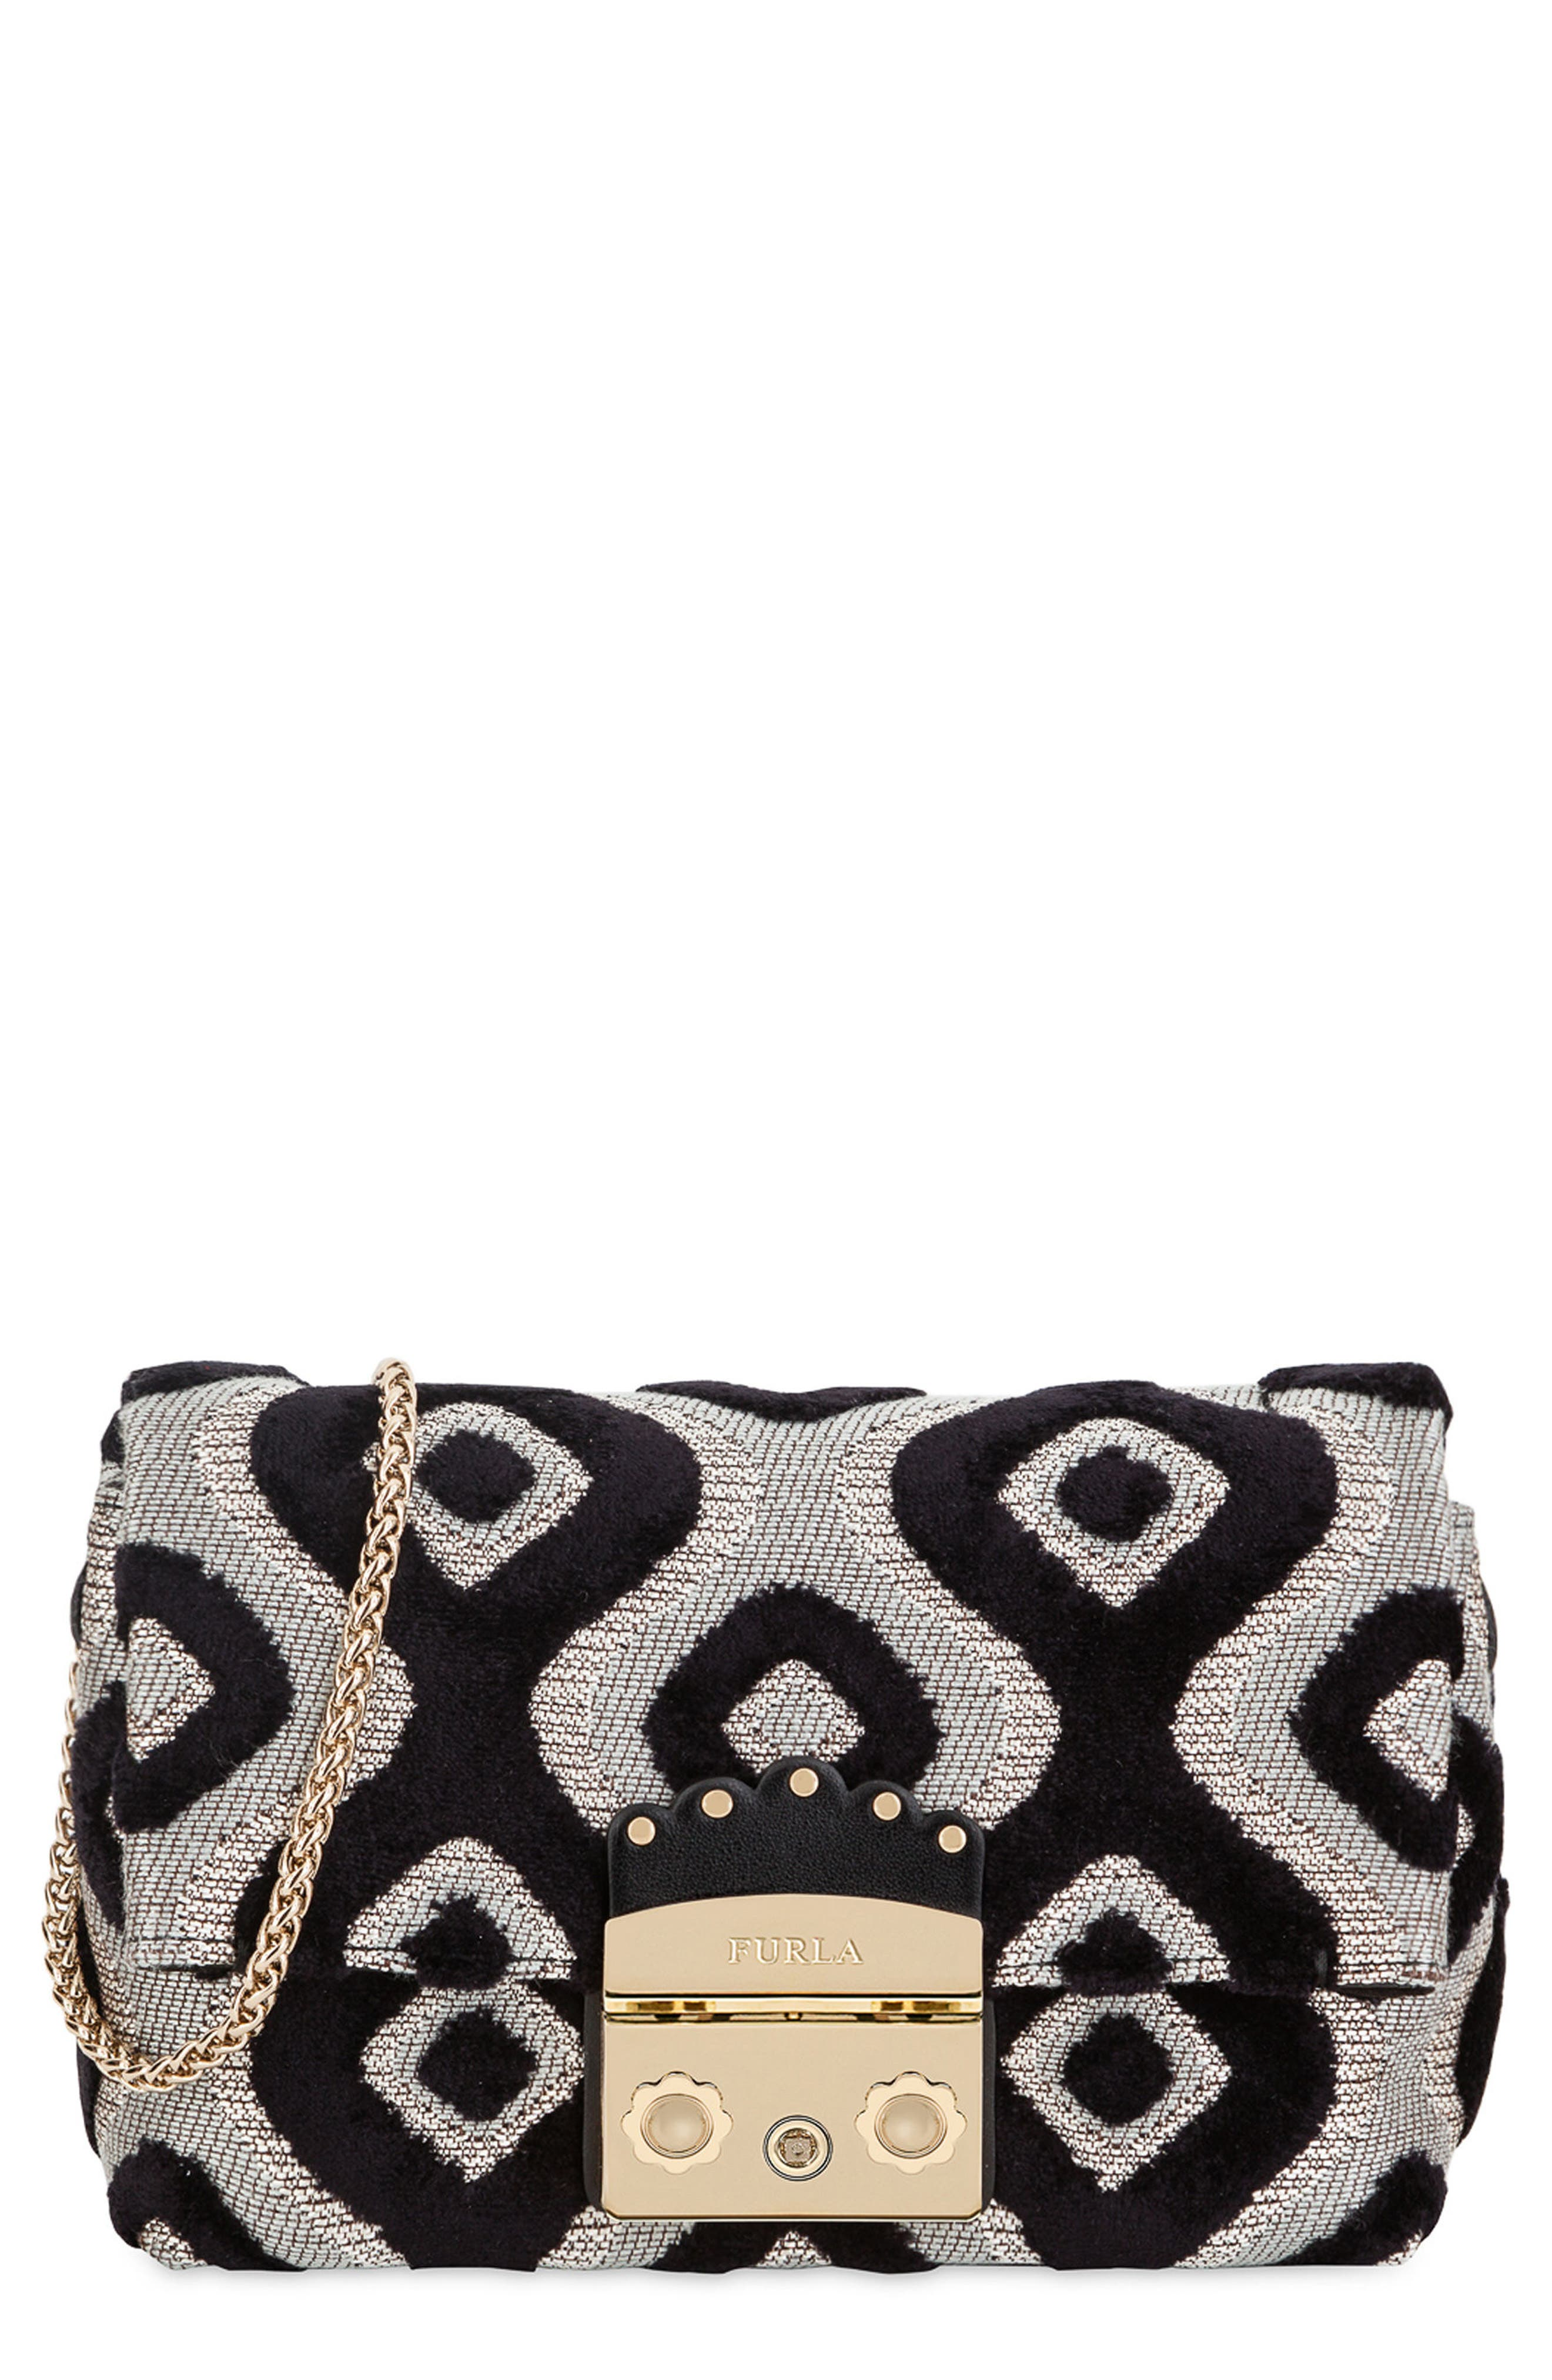 Mini Metropolis Nuvola Jacquard Crossbody Bag,                             Main thumbnail 1, color,                             710